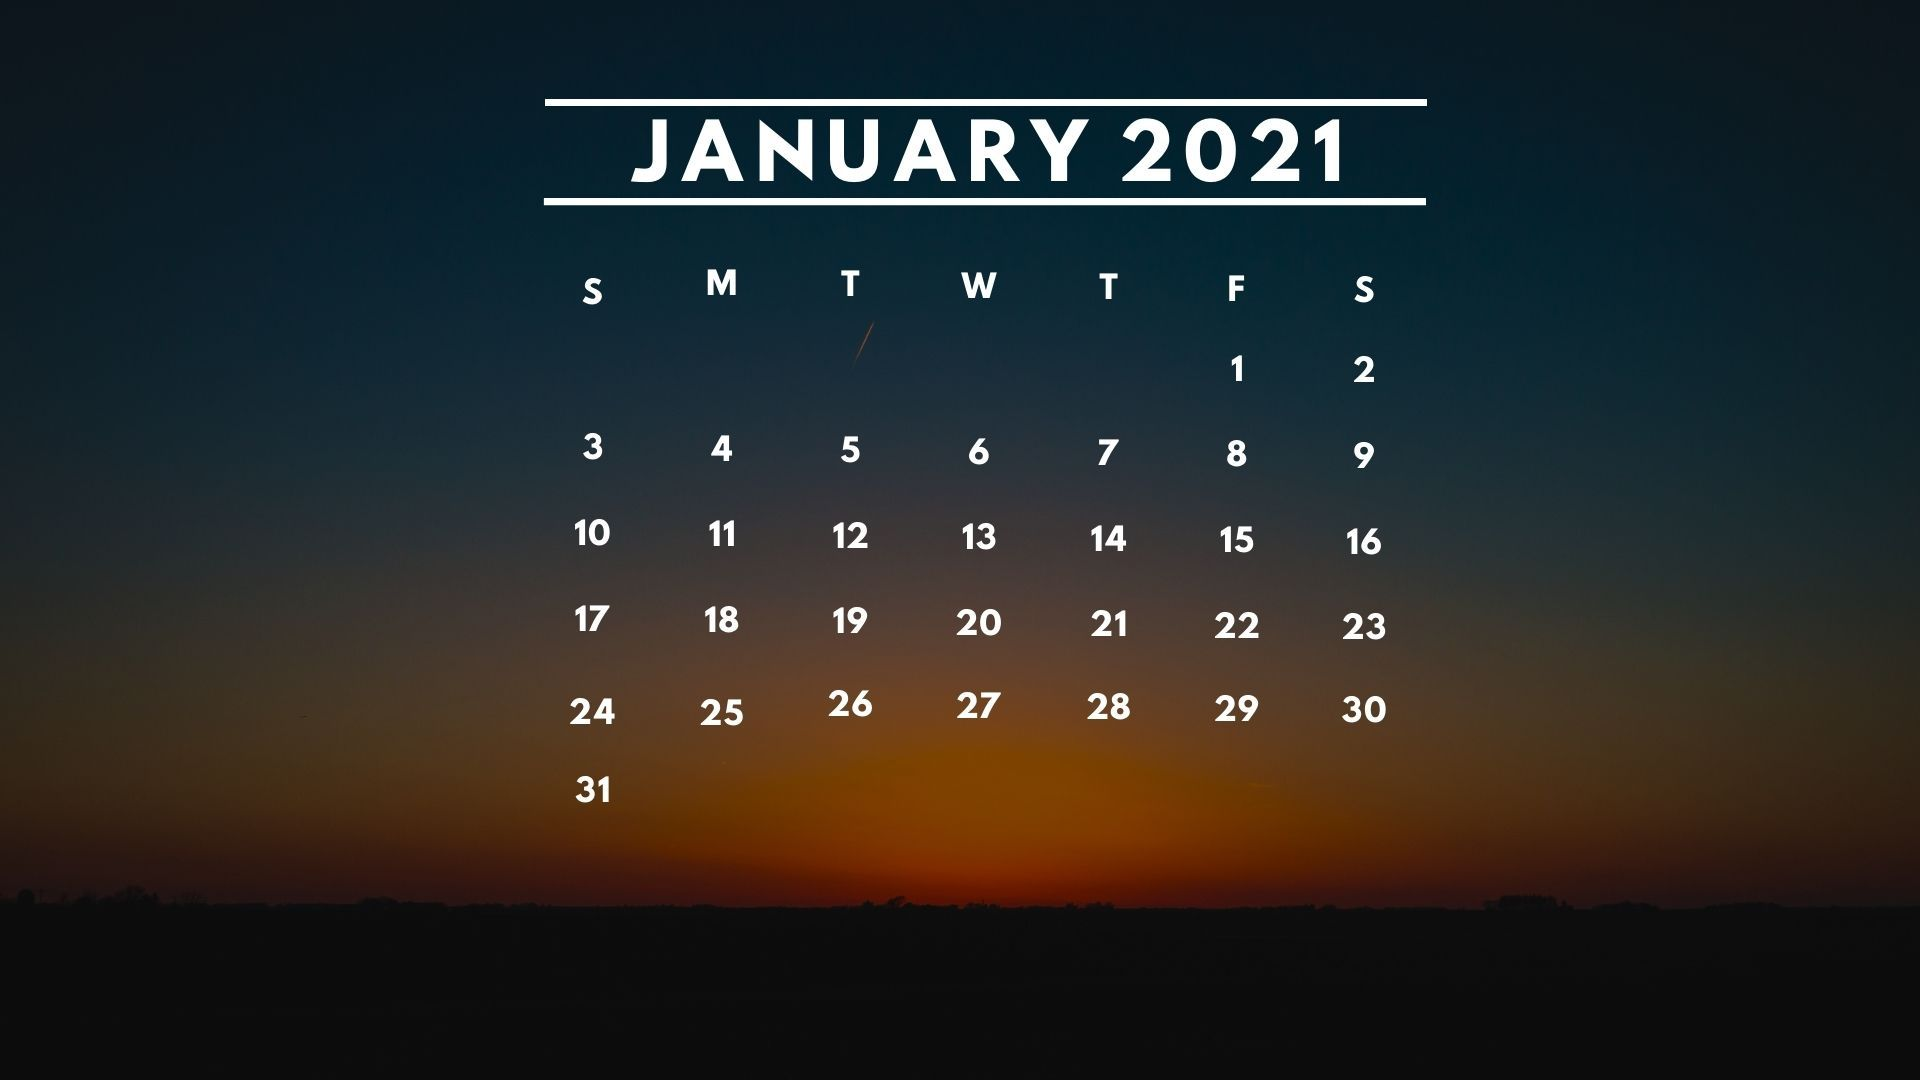 January 2021 Desktop Calendar January 2021 Calendar Desktop Background Wallpaper Download in